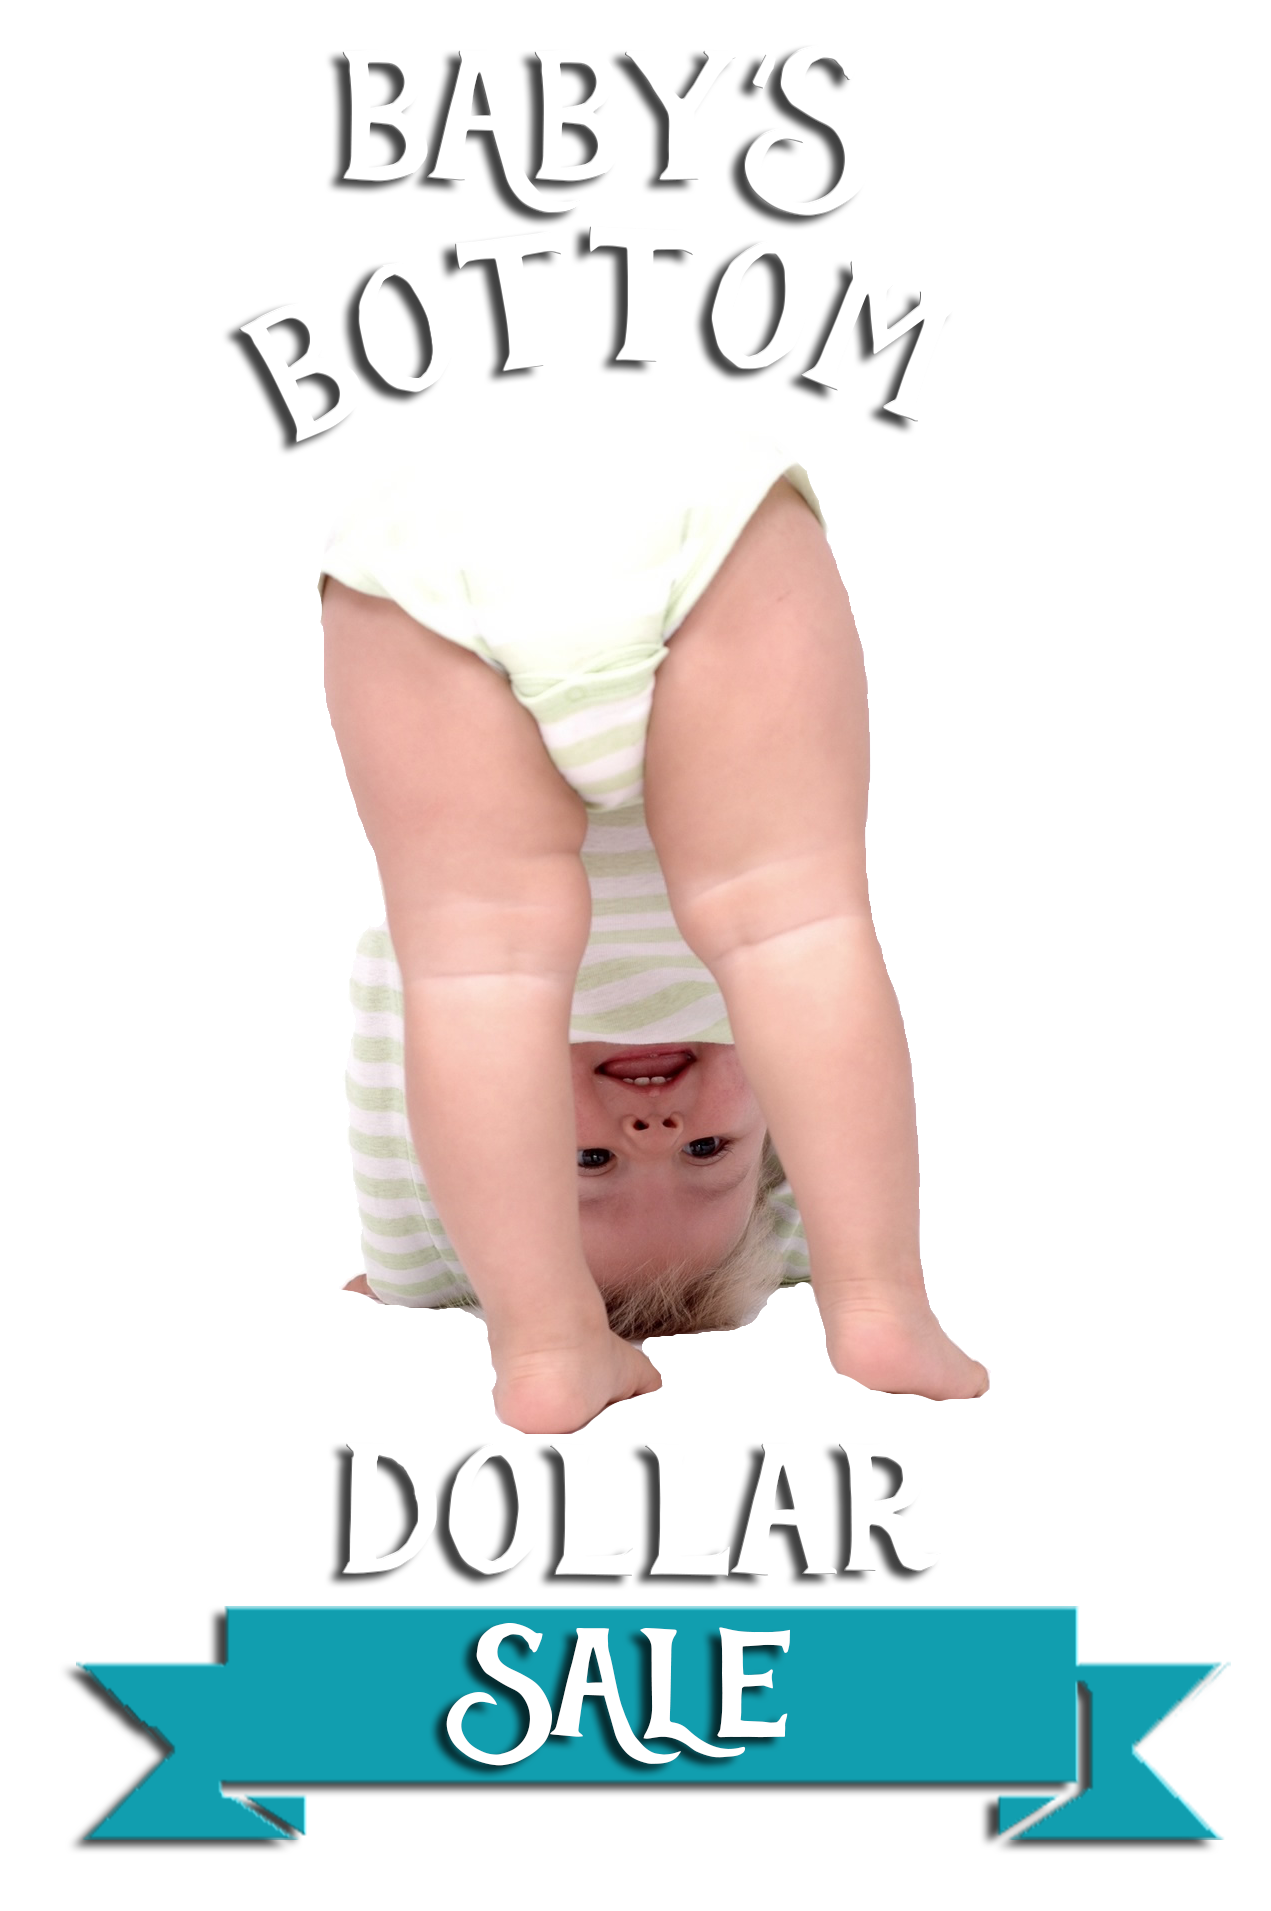 Baby's Bottom Dollar Sale